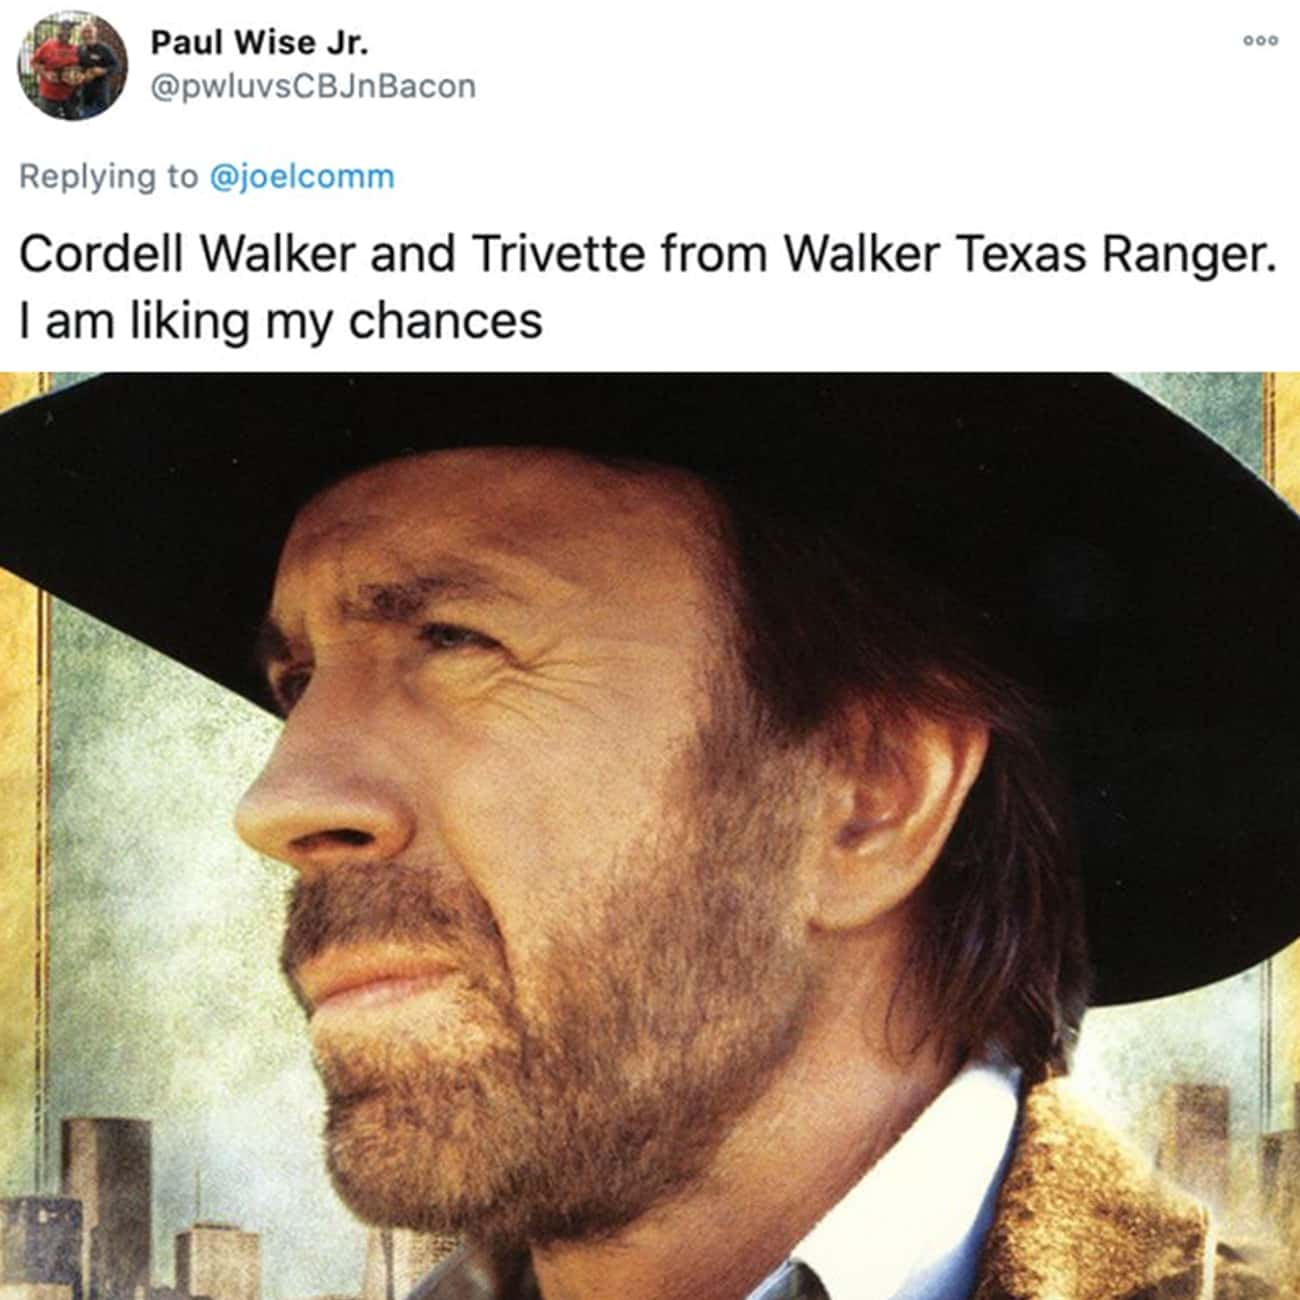 Texas Ranger Cordell Walker